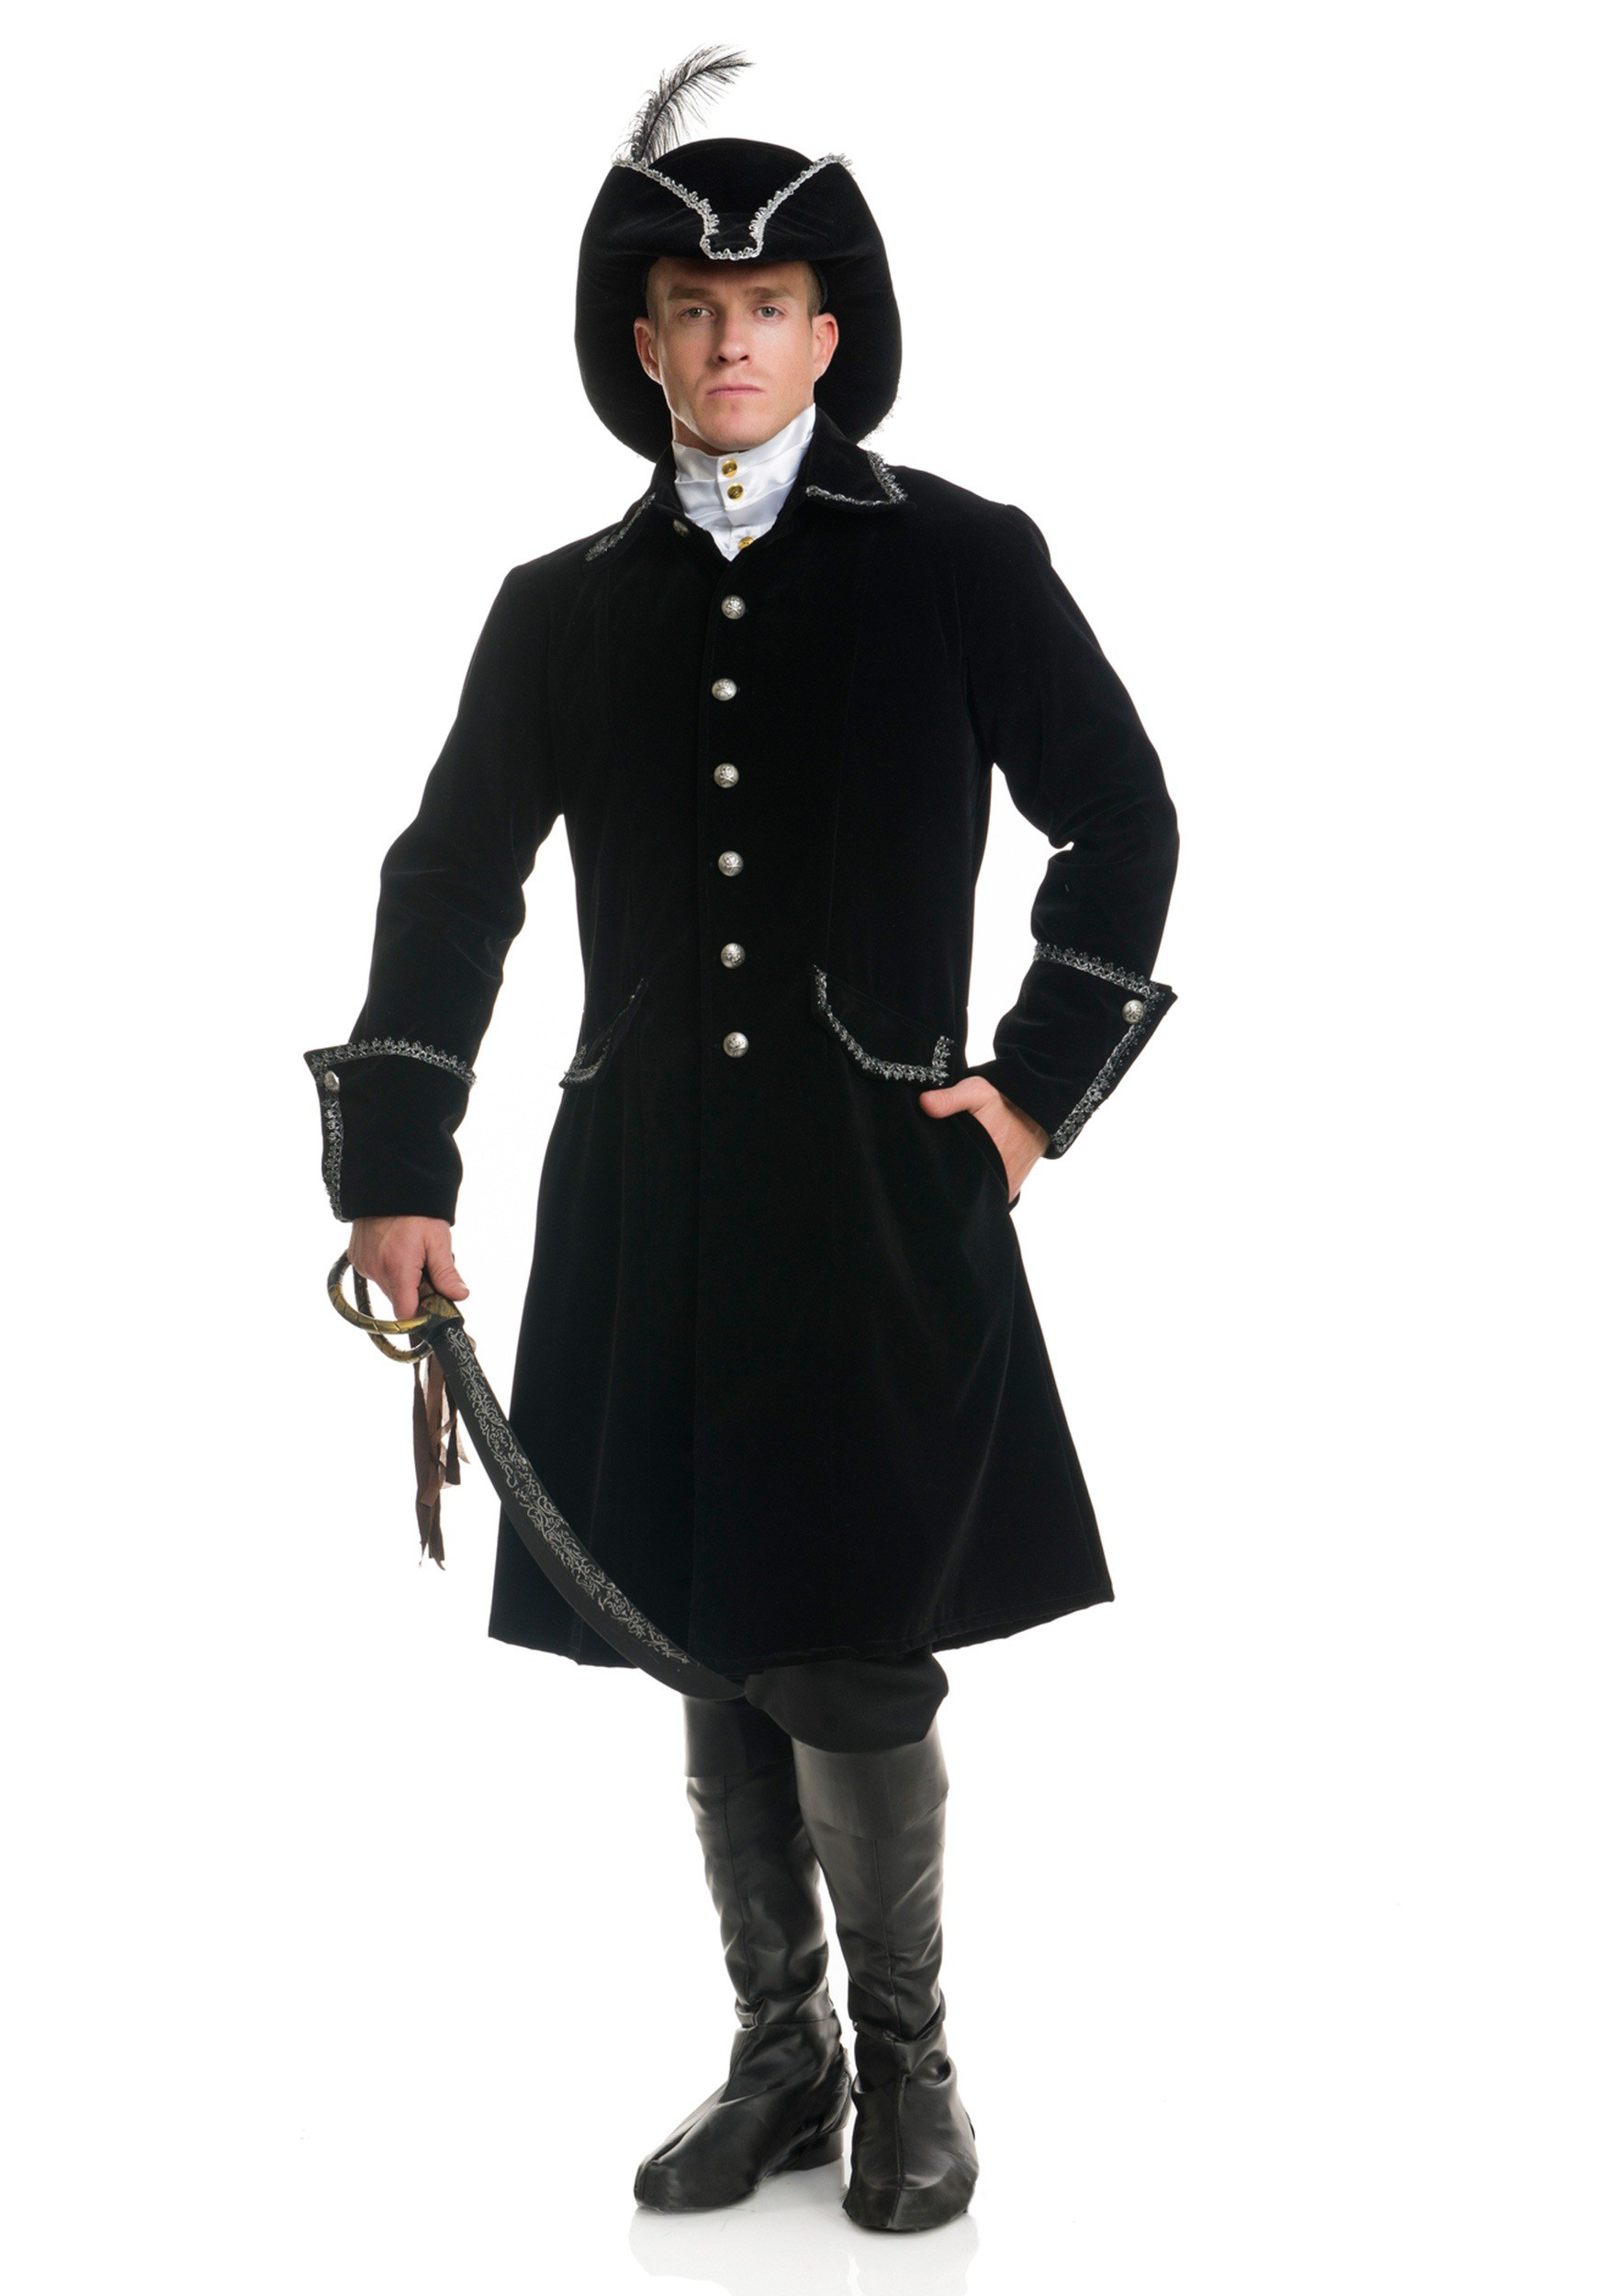 Men's Deluxe Black Pirate Jacket with Pockets Costume